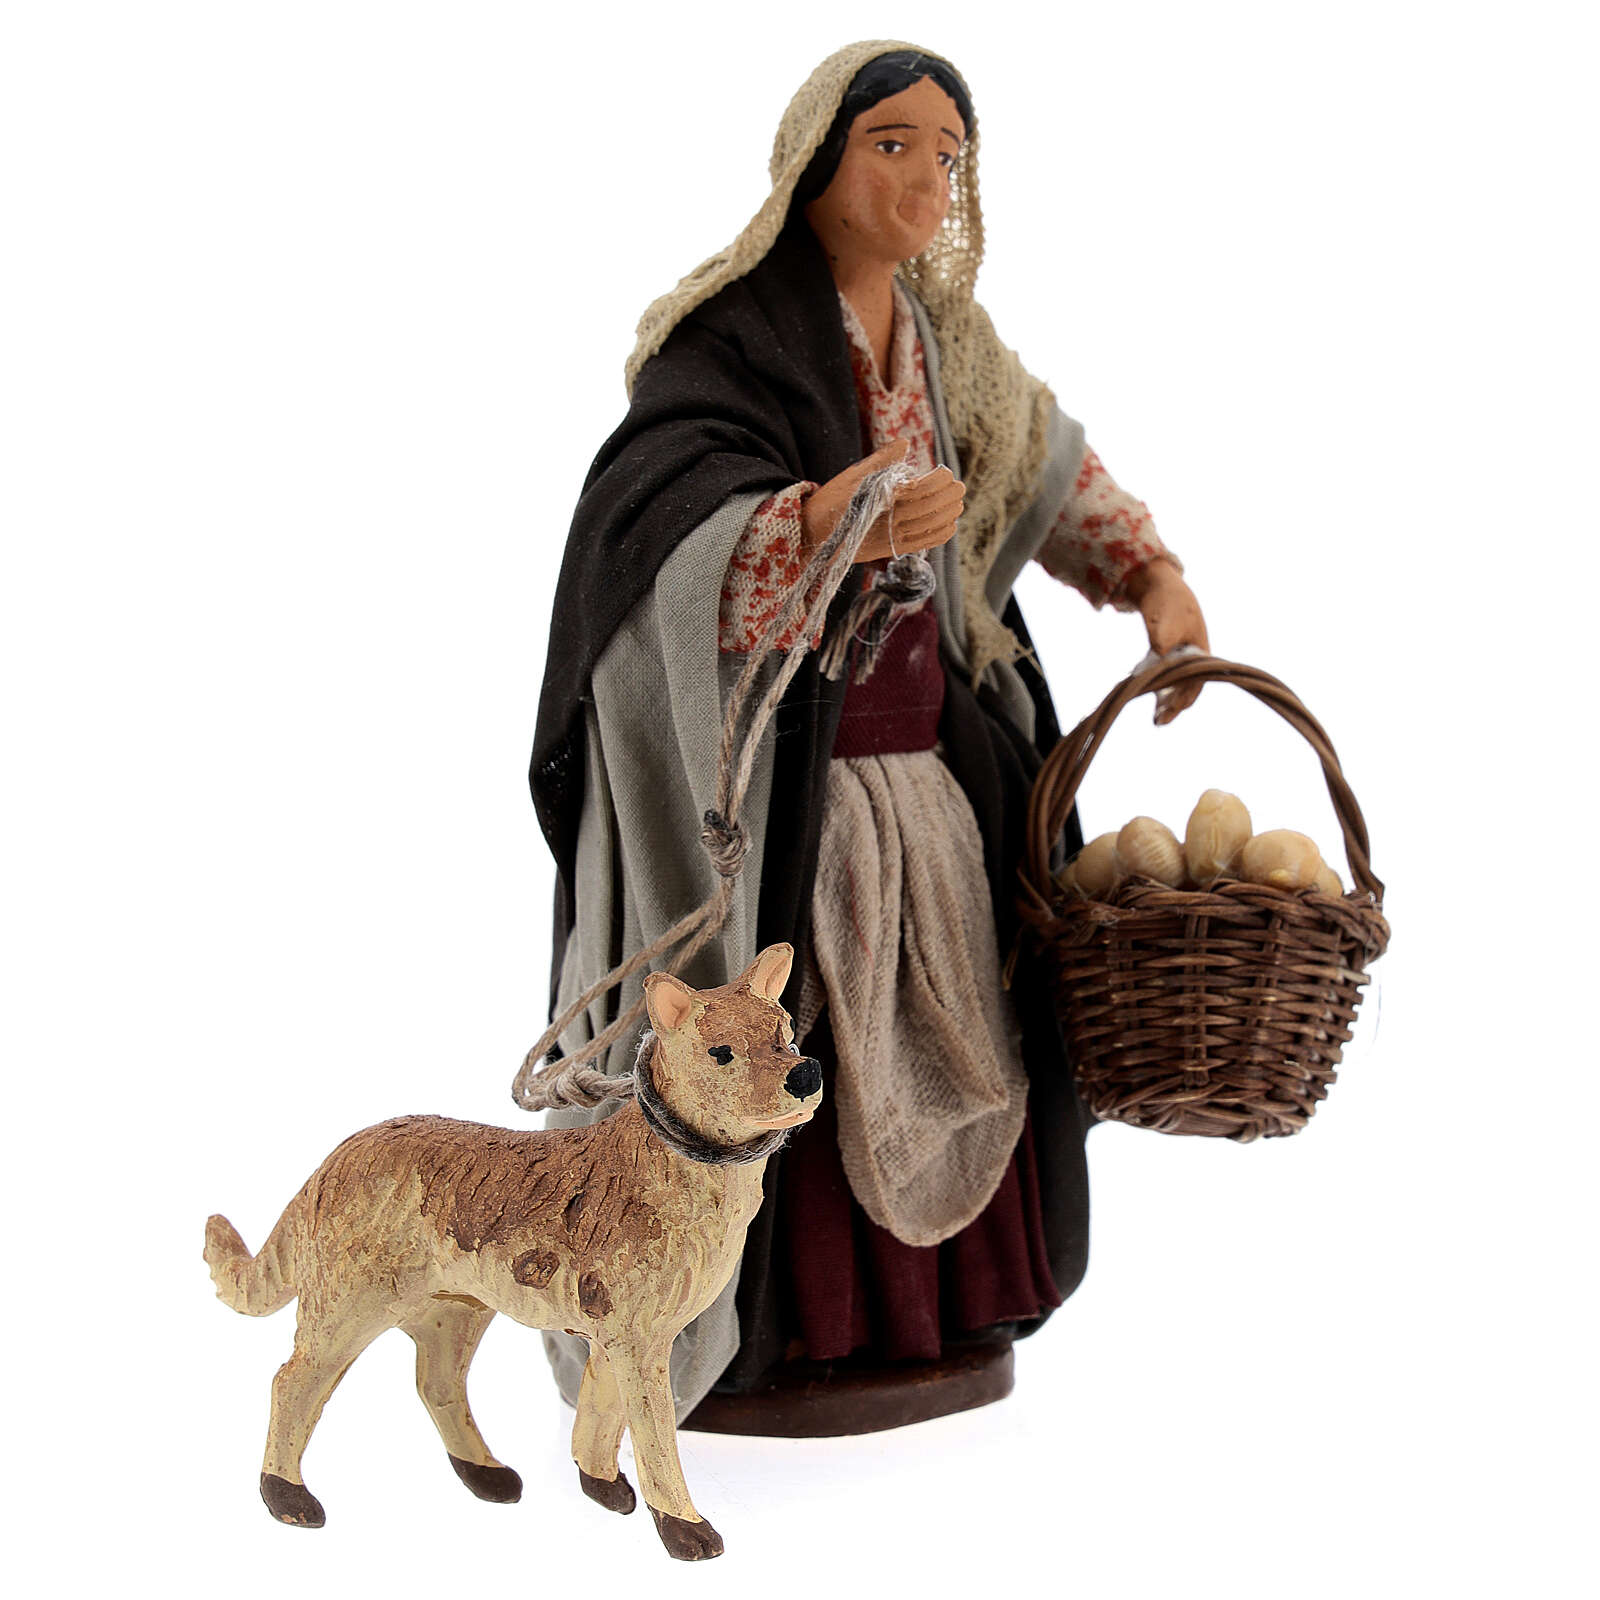 Woman with basket and dog figurines, 13 cm Neapolitan Nativity Scen 4